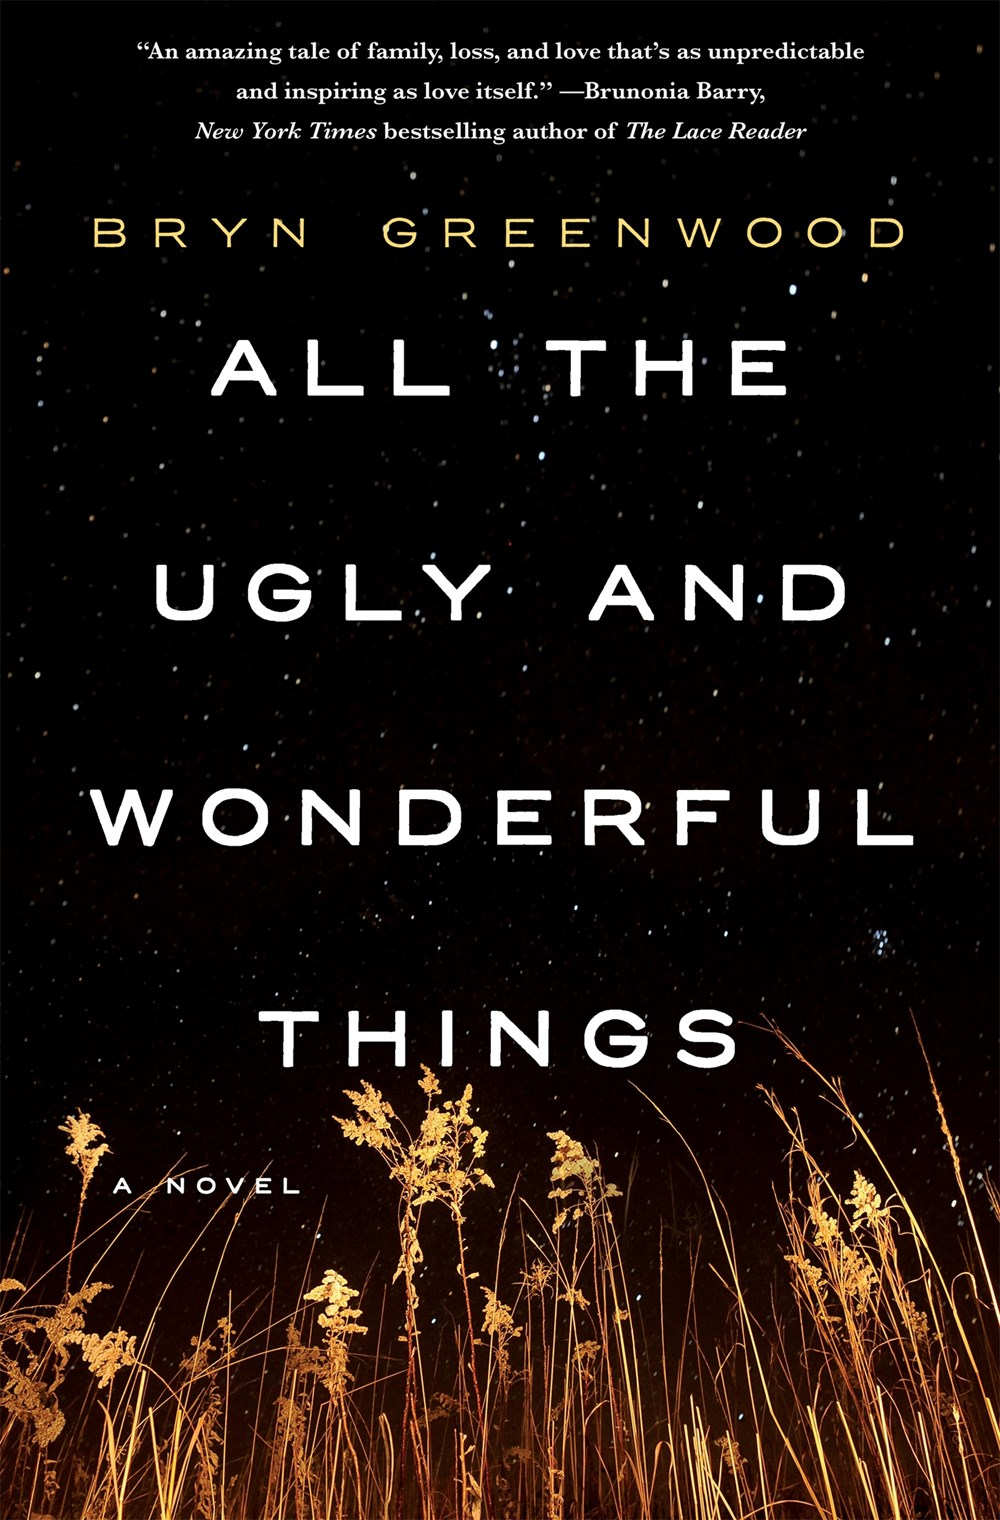 All the Ugly and Wonderful Things by Bryn Greenwood